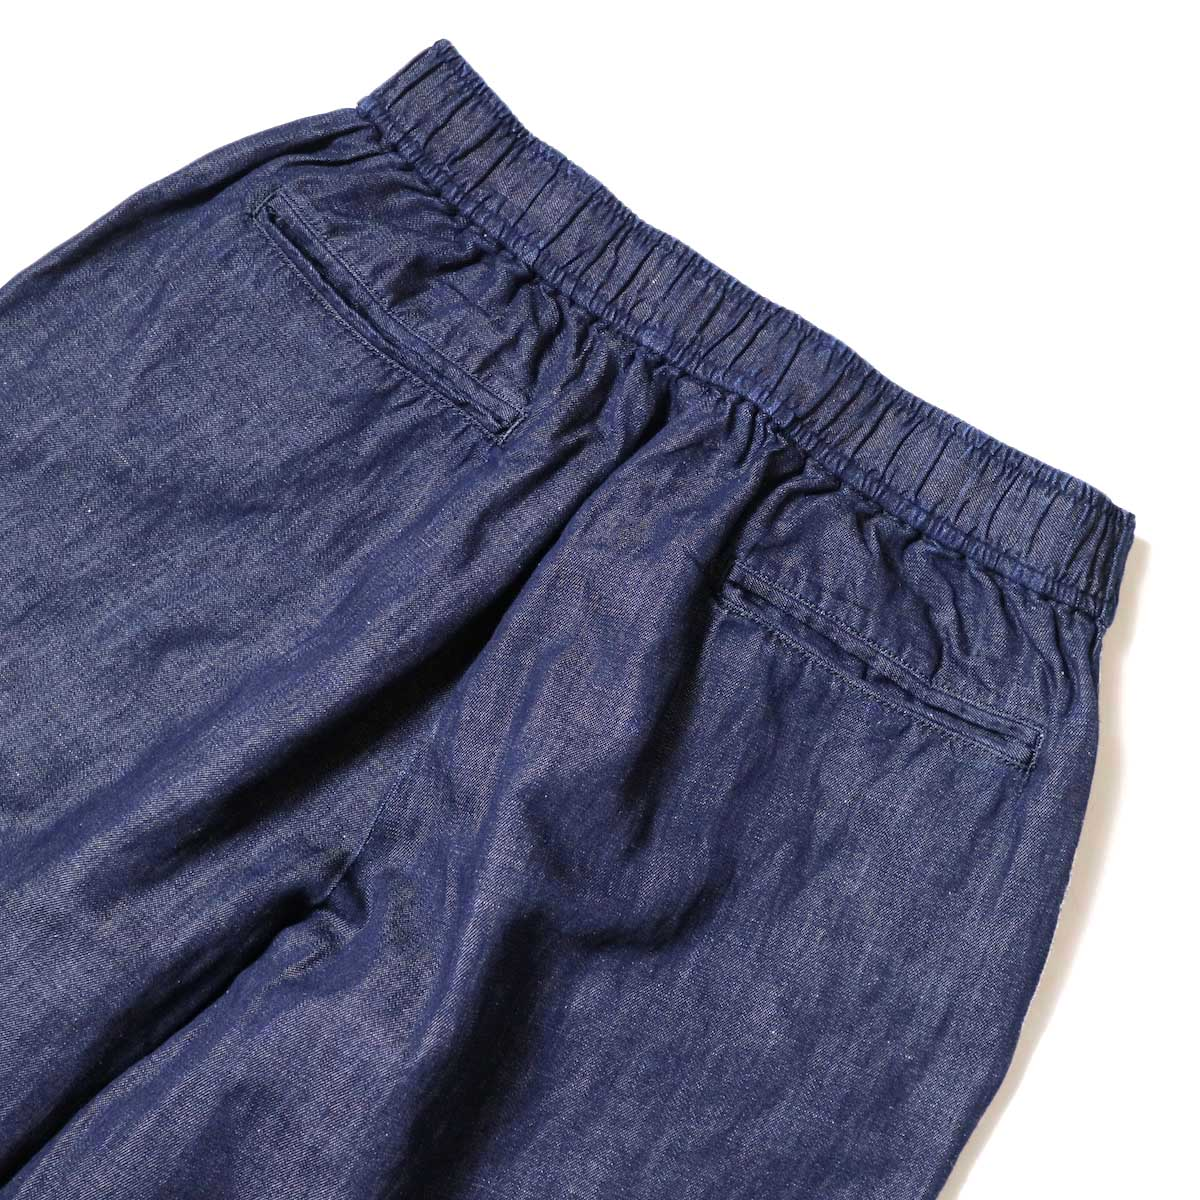 maison de soil / COTTON LINEN EASY WIDE PANTS (Navy) 背面ウエスト